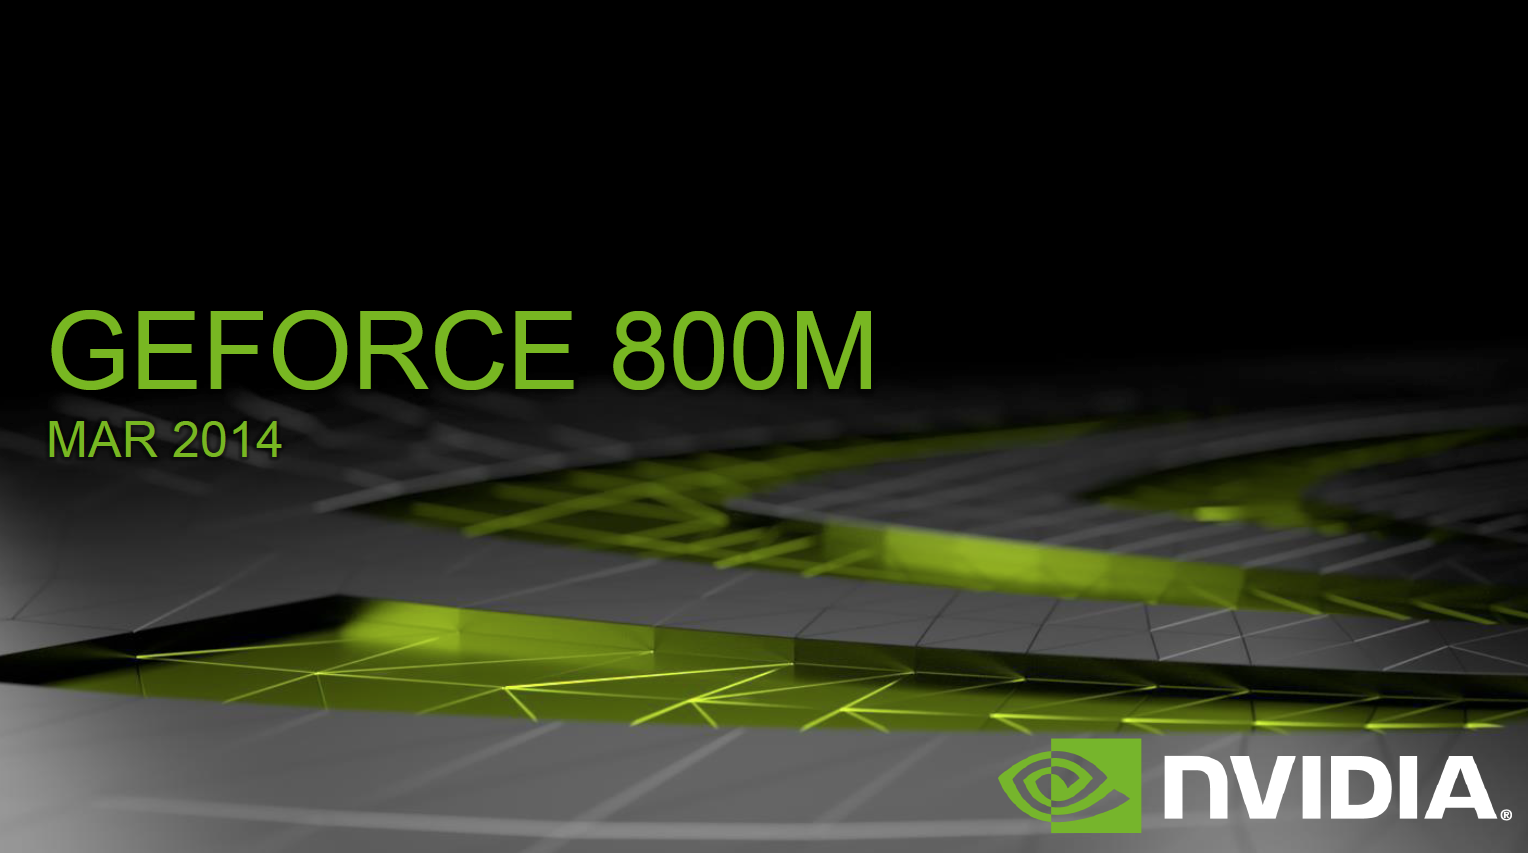 Battery Boost 全新功能加入,NVIDIA GeForce 800M 家族提槍上戰場 - http://chinese.vr-zone.com/?p=104641